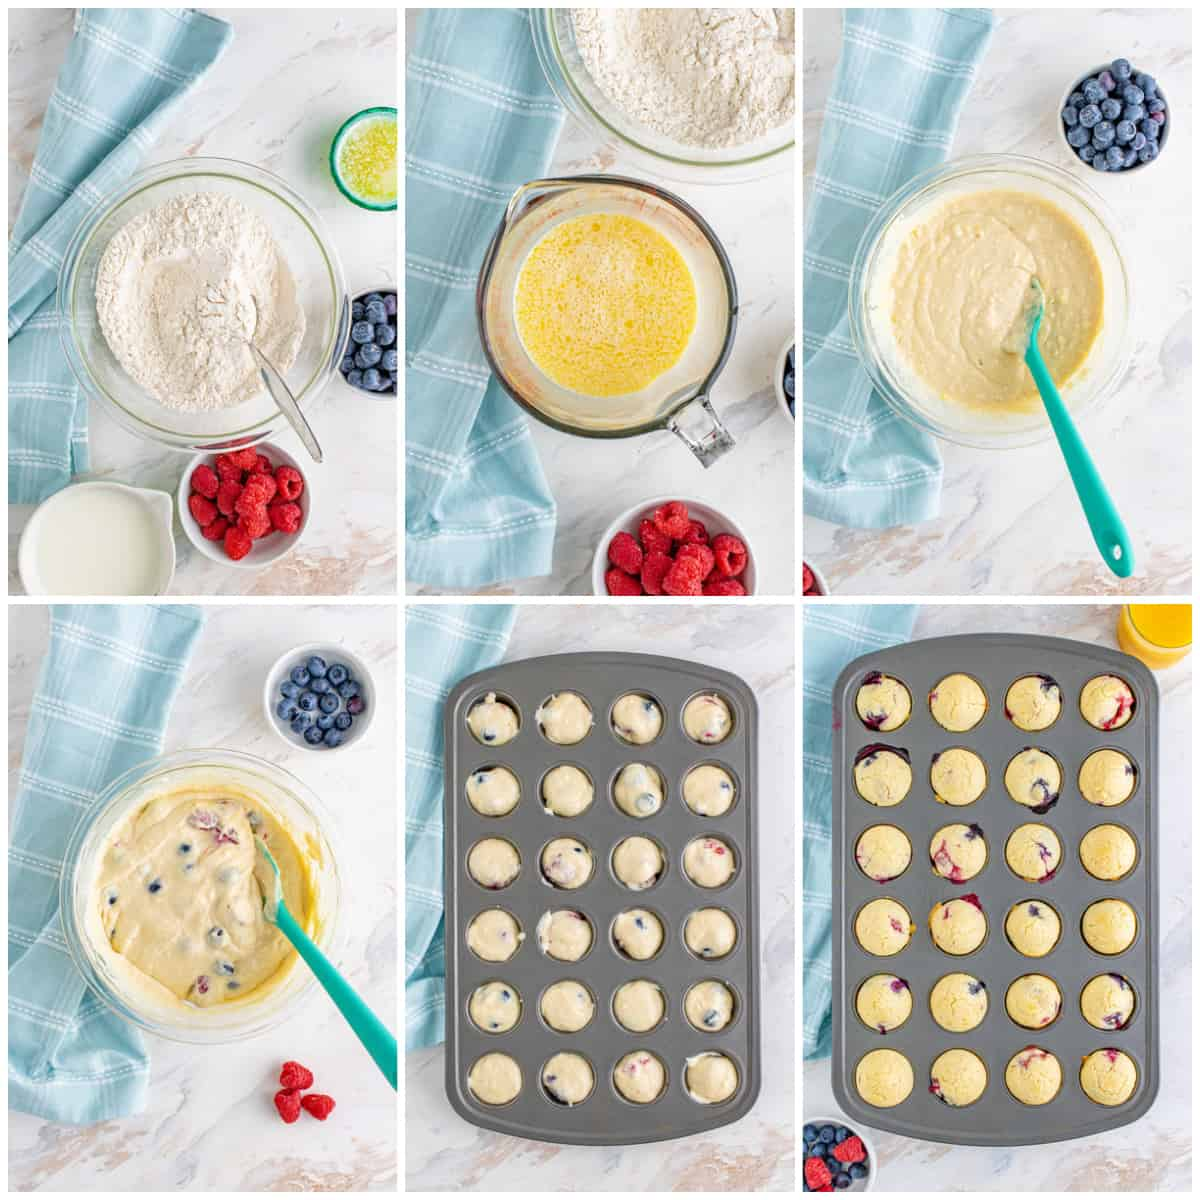 Step by step photos on how to make Berry Pancake Bites